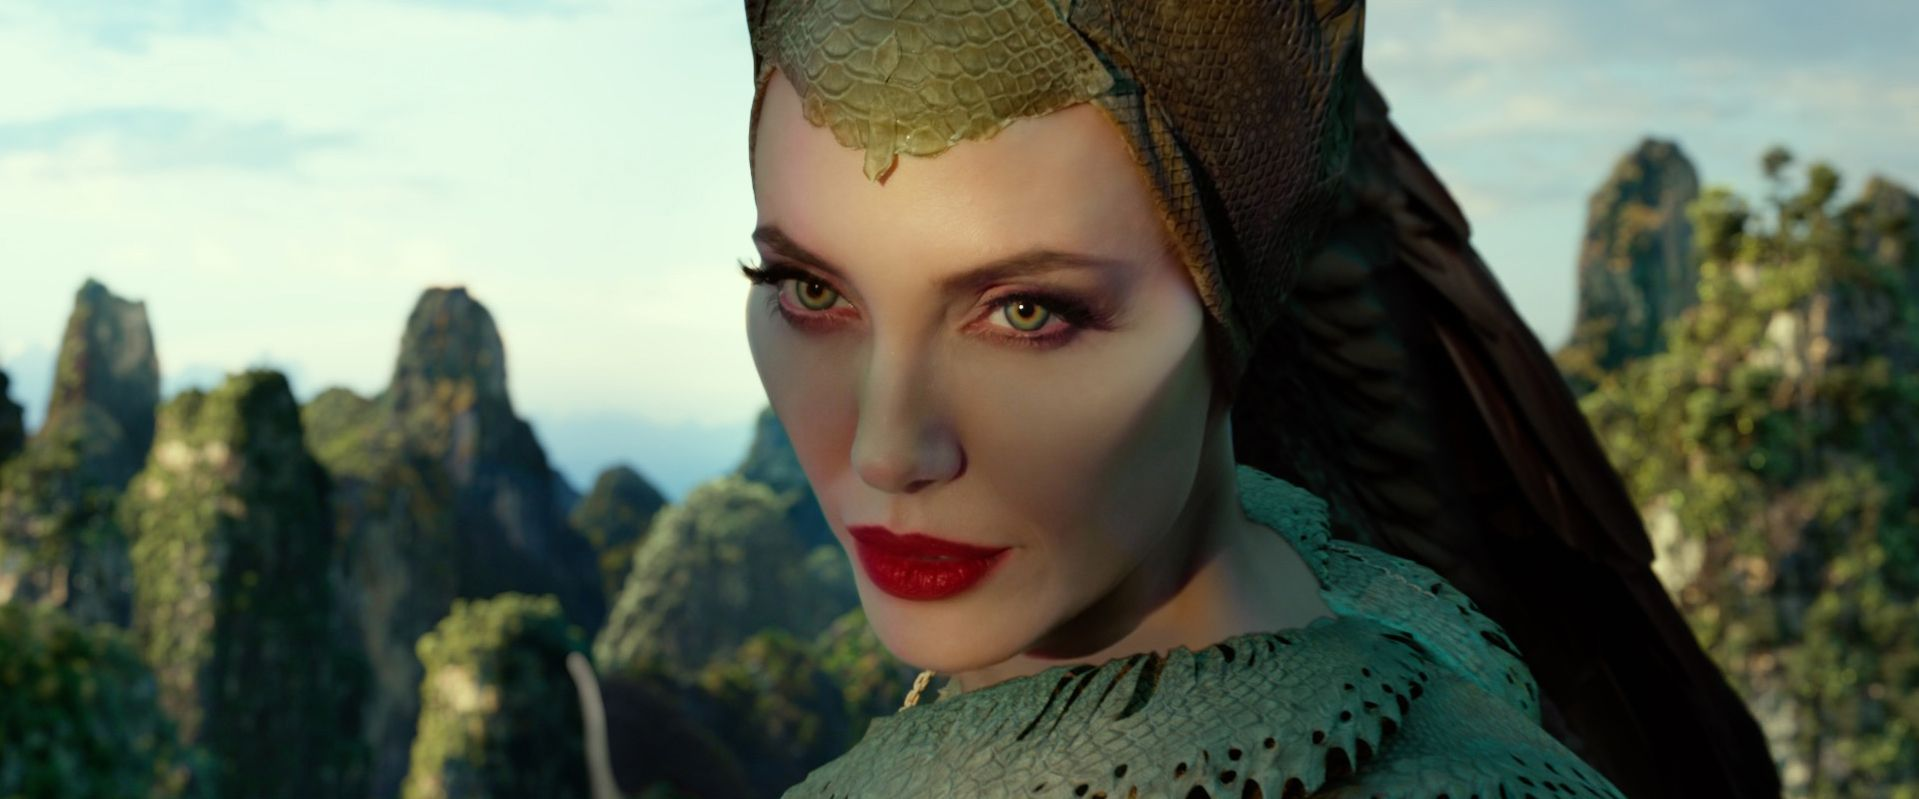 Maleficent Mistress Of Evil Character Posters And Trailer